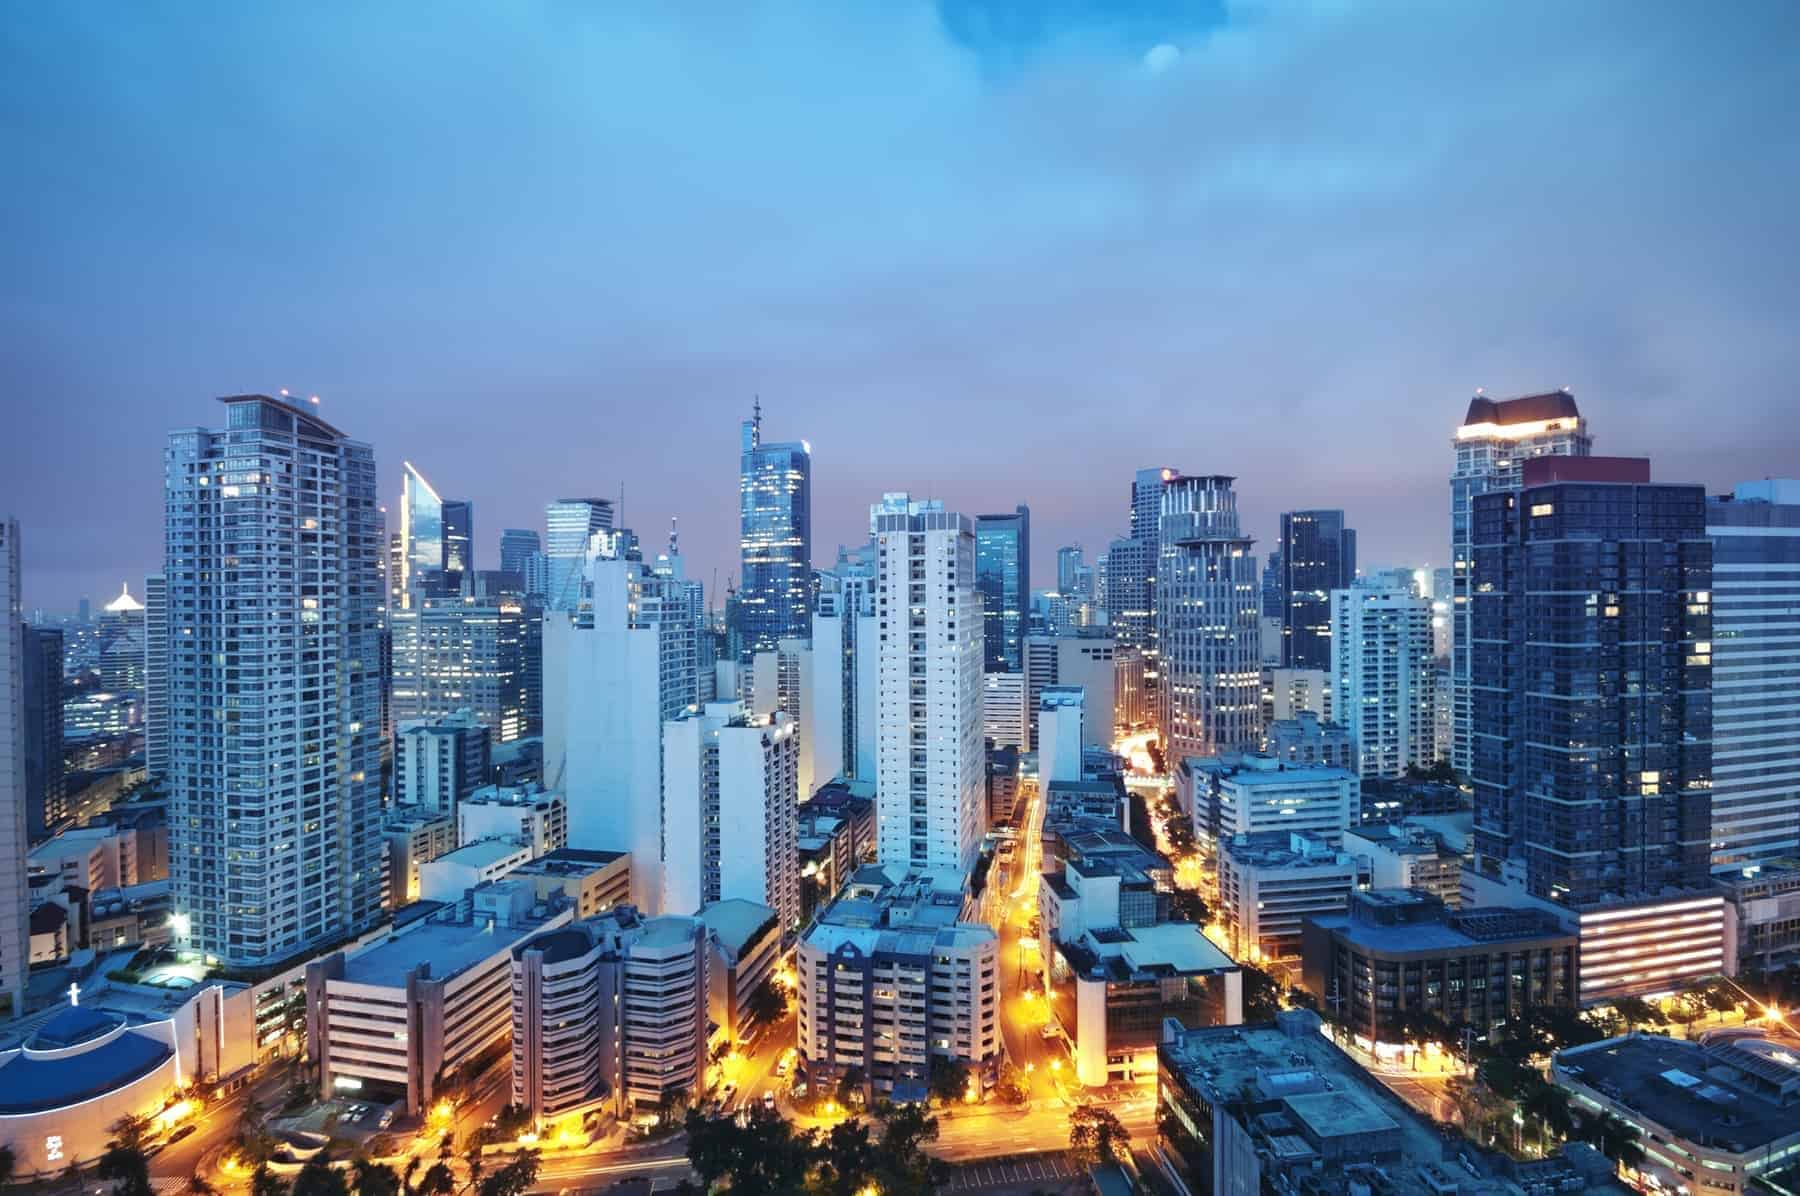 Elevated, night view of Makati, the business district of Metro Manila. Luzon.